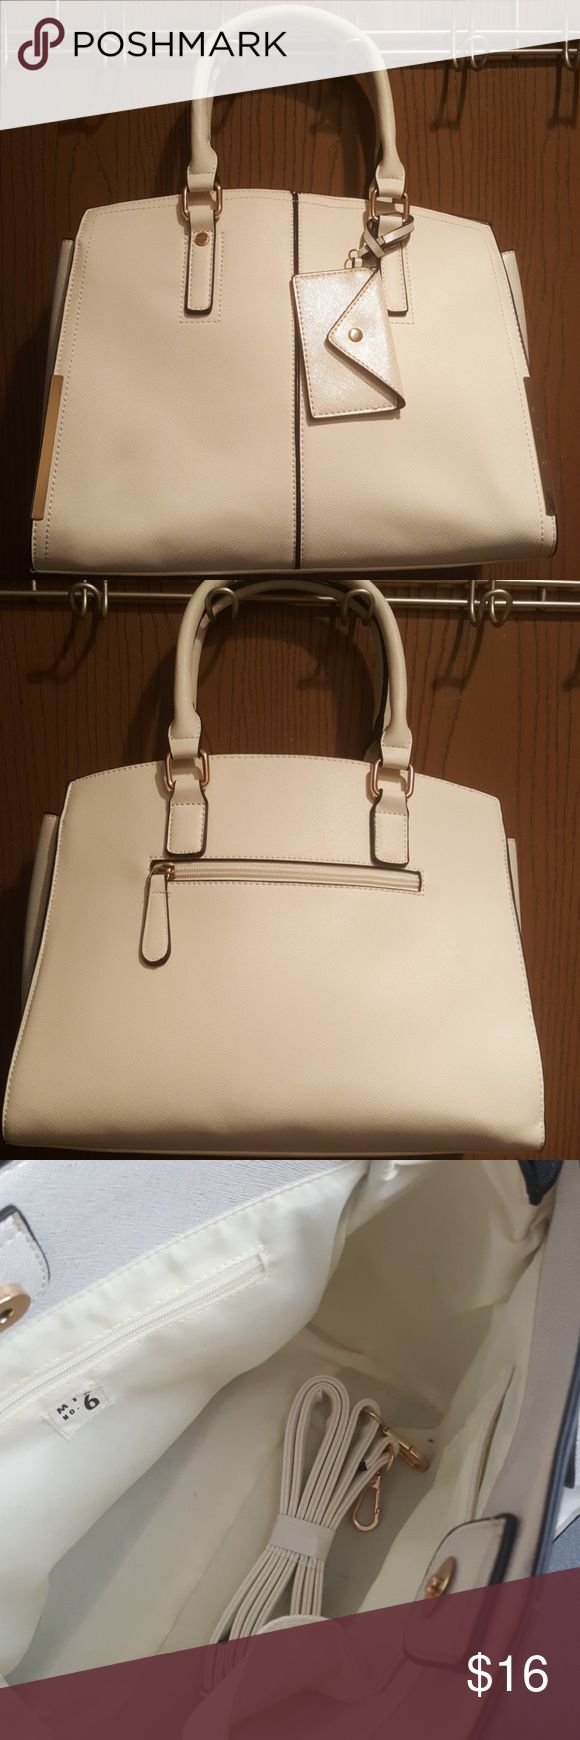 White gold medium sized bag Gently used white gold colored, bag with gold and black accents.  Comes with detachable small pouch and adjustable shoulder strap.  Inside and outside pockets! Mix No. 6 Bags Crossbody Bags